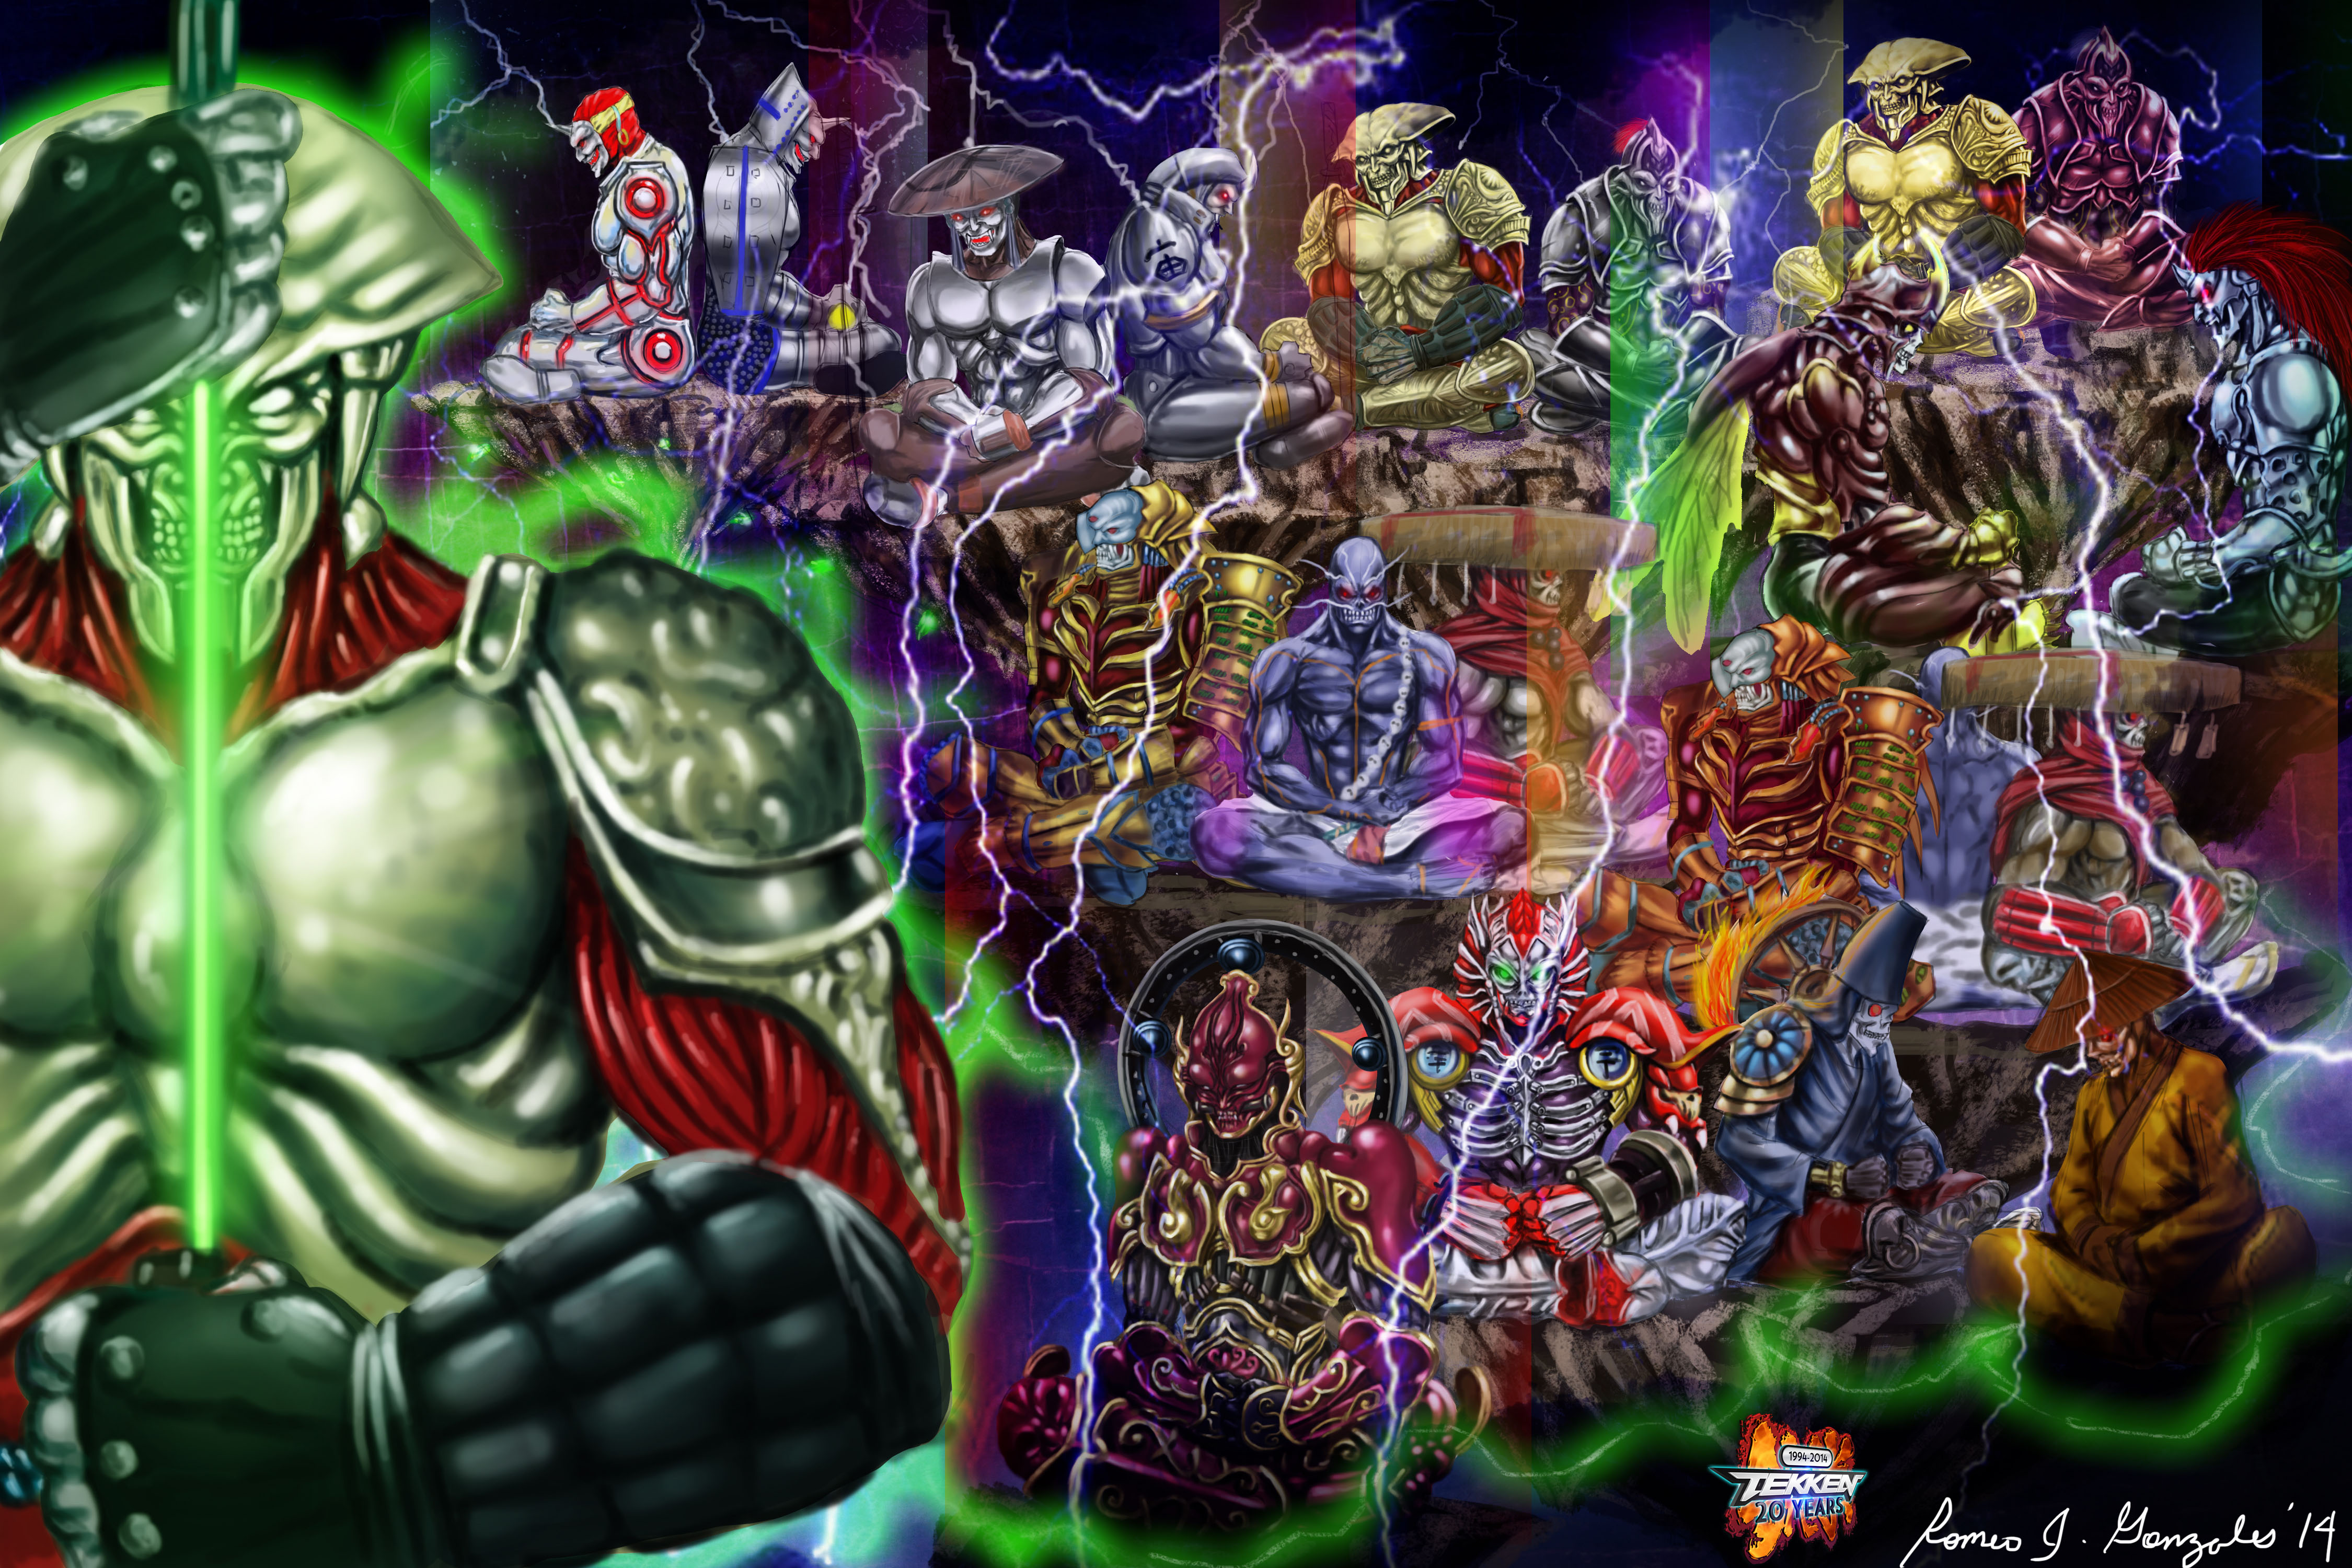 Yoshimitsu the Evolution in Tekken Game Art HQ Tekken Anniversary Tribute